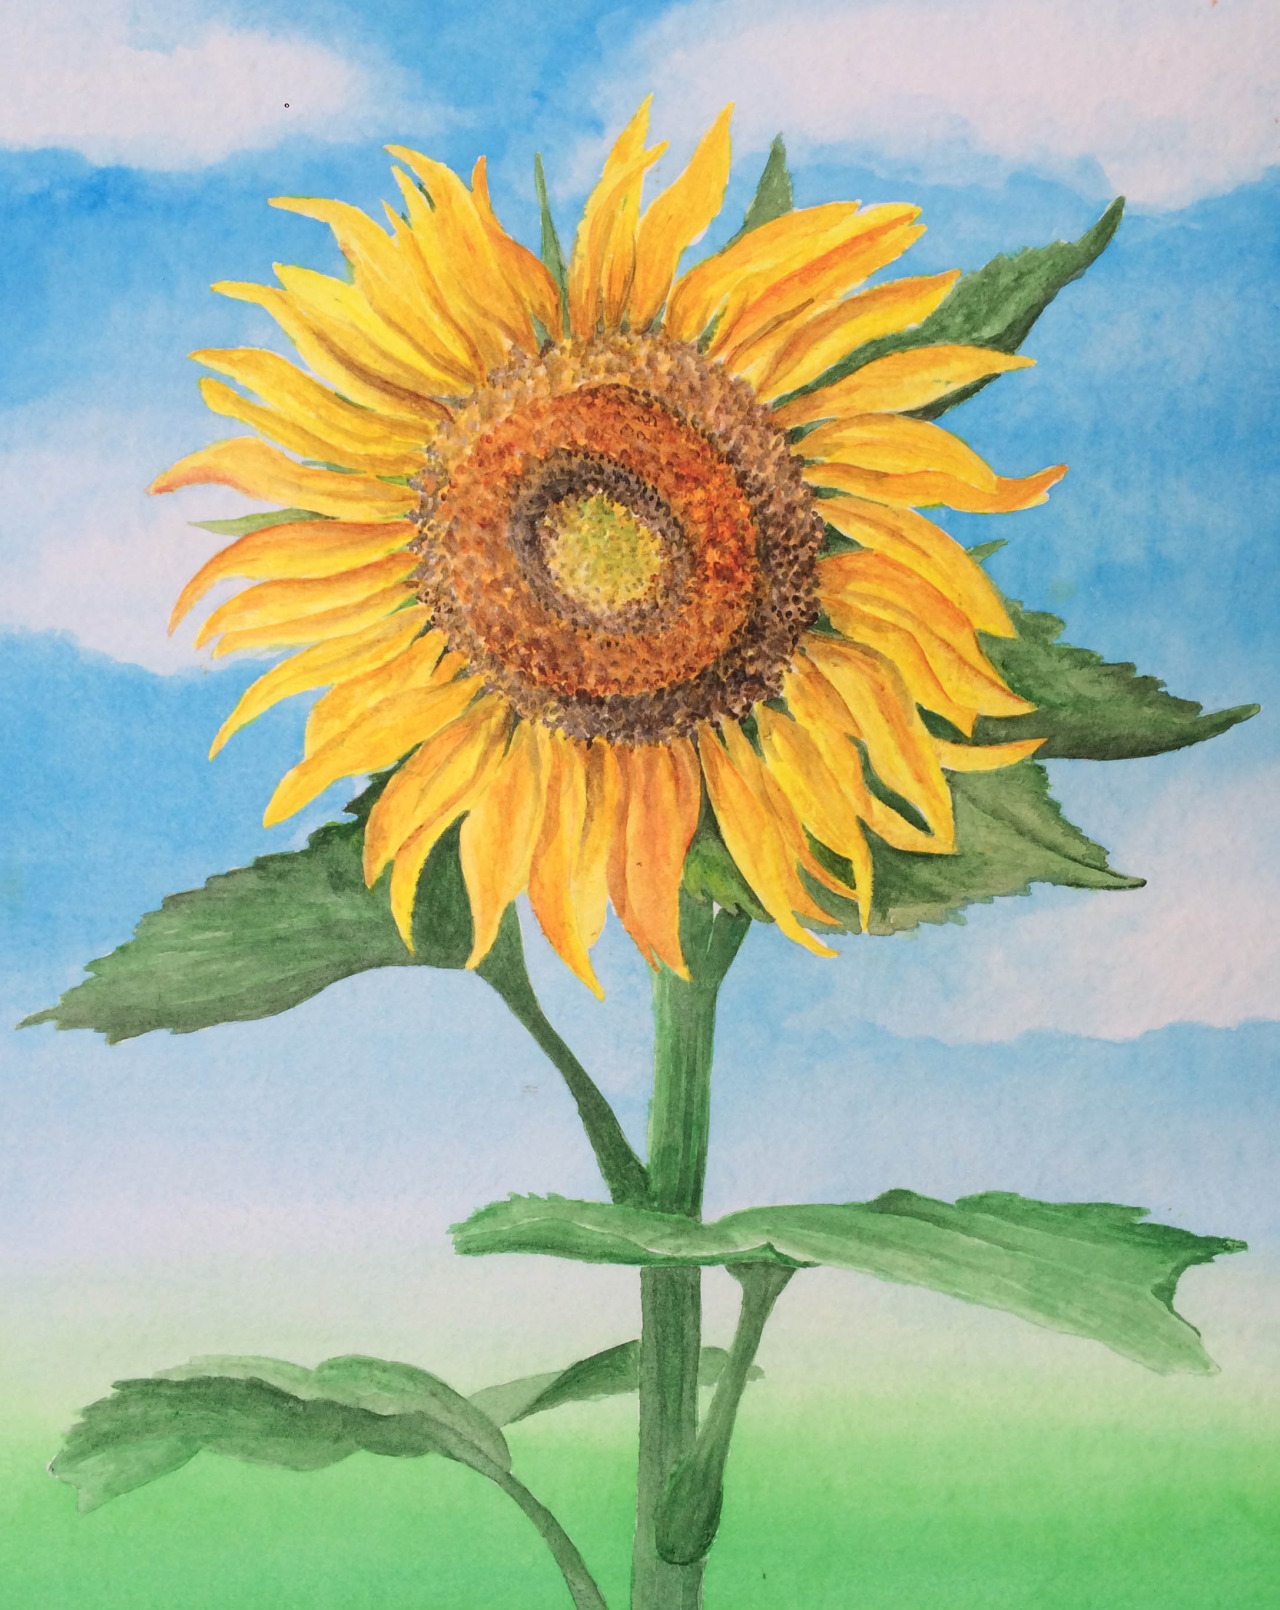 Watercolor, 16x20 in.  Commissioned sunflower painting.     I'm definitely still getting used to this medium but I've now conquered my fear of watercolor and I am excited to keep experimenting with it!